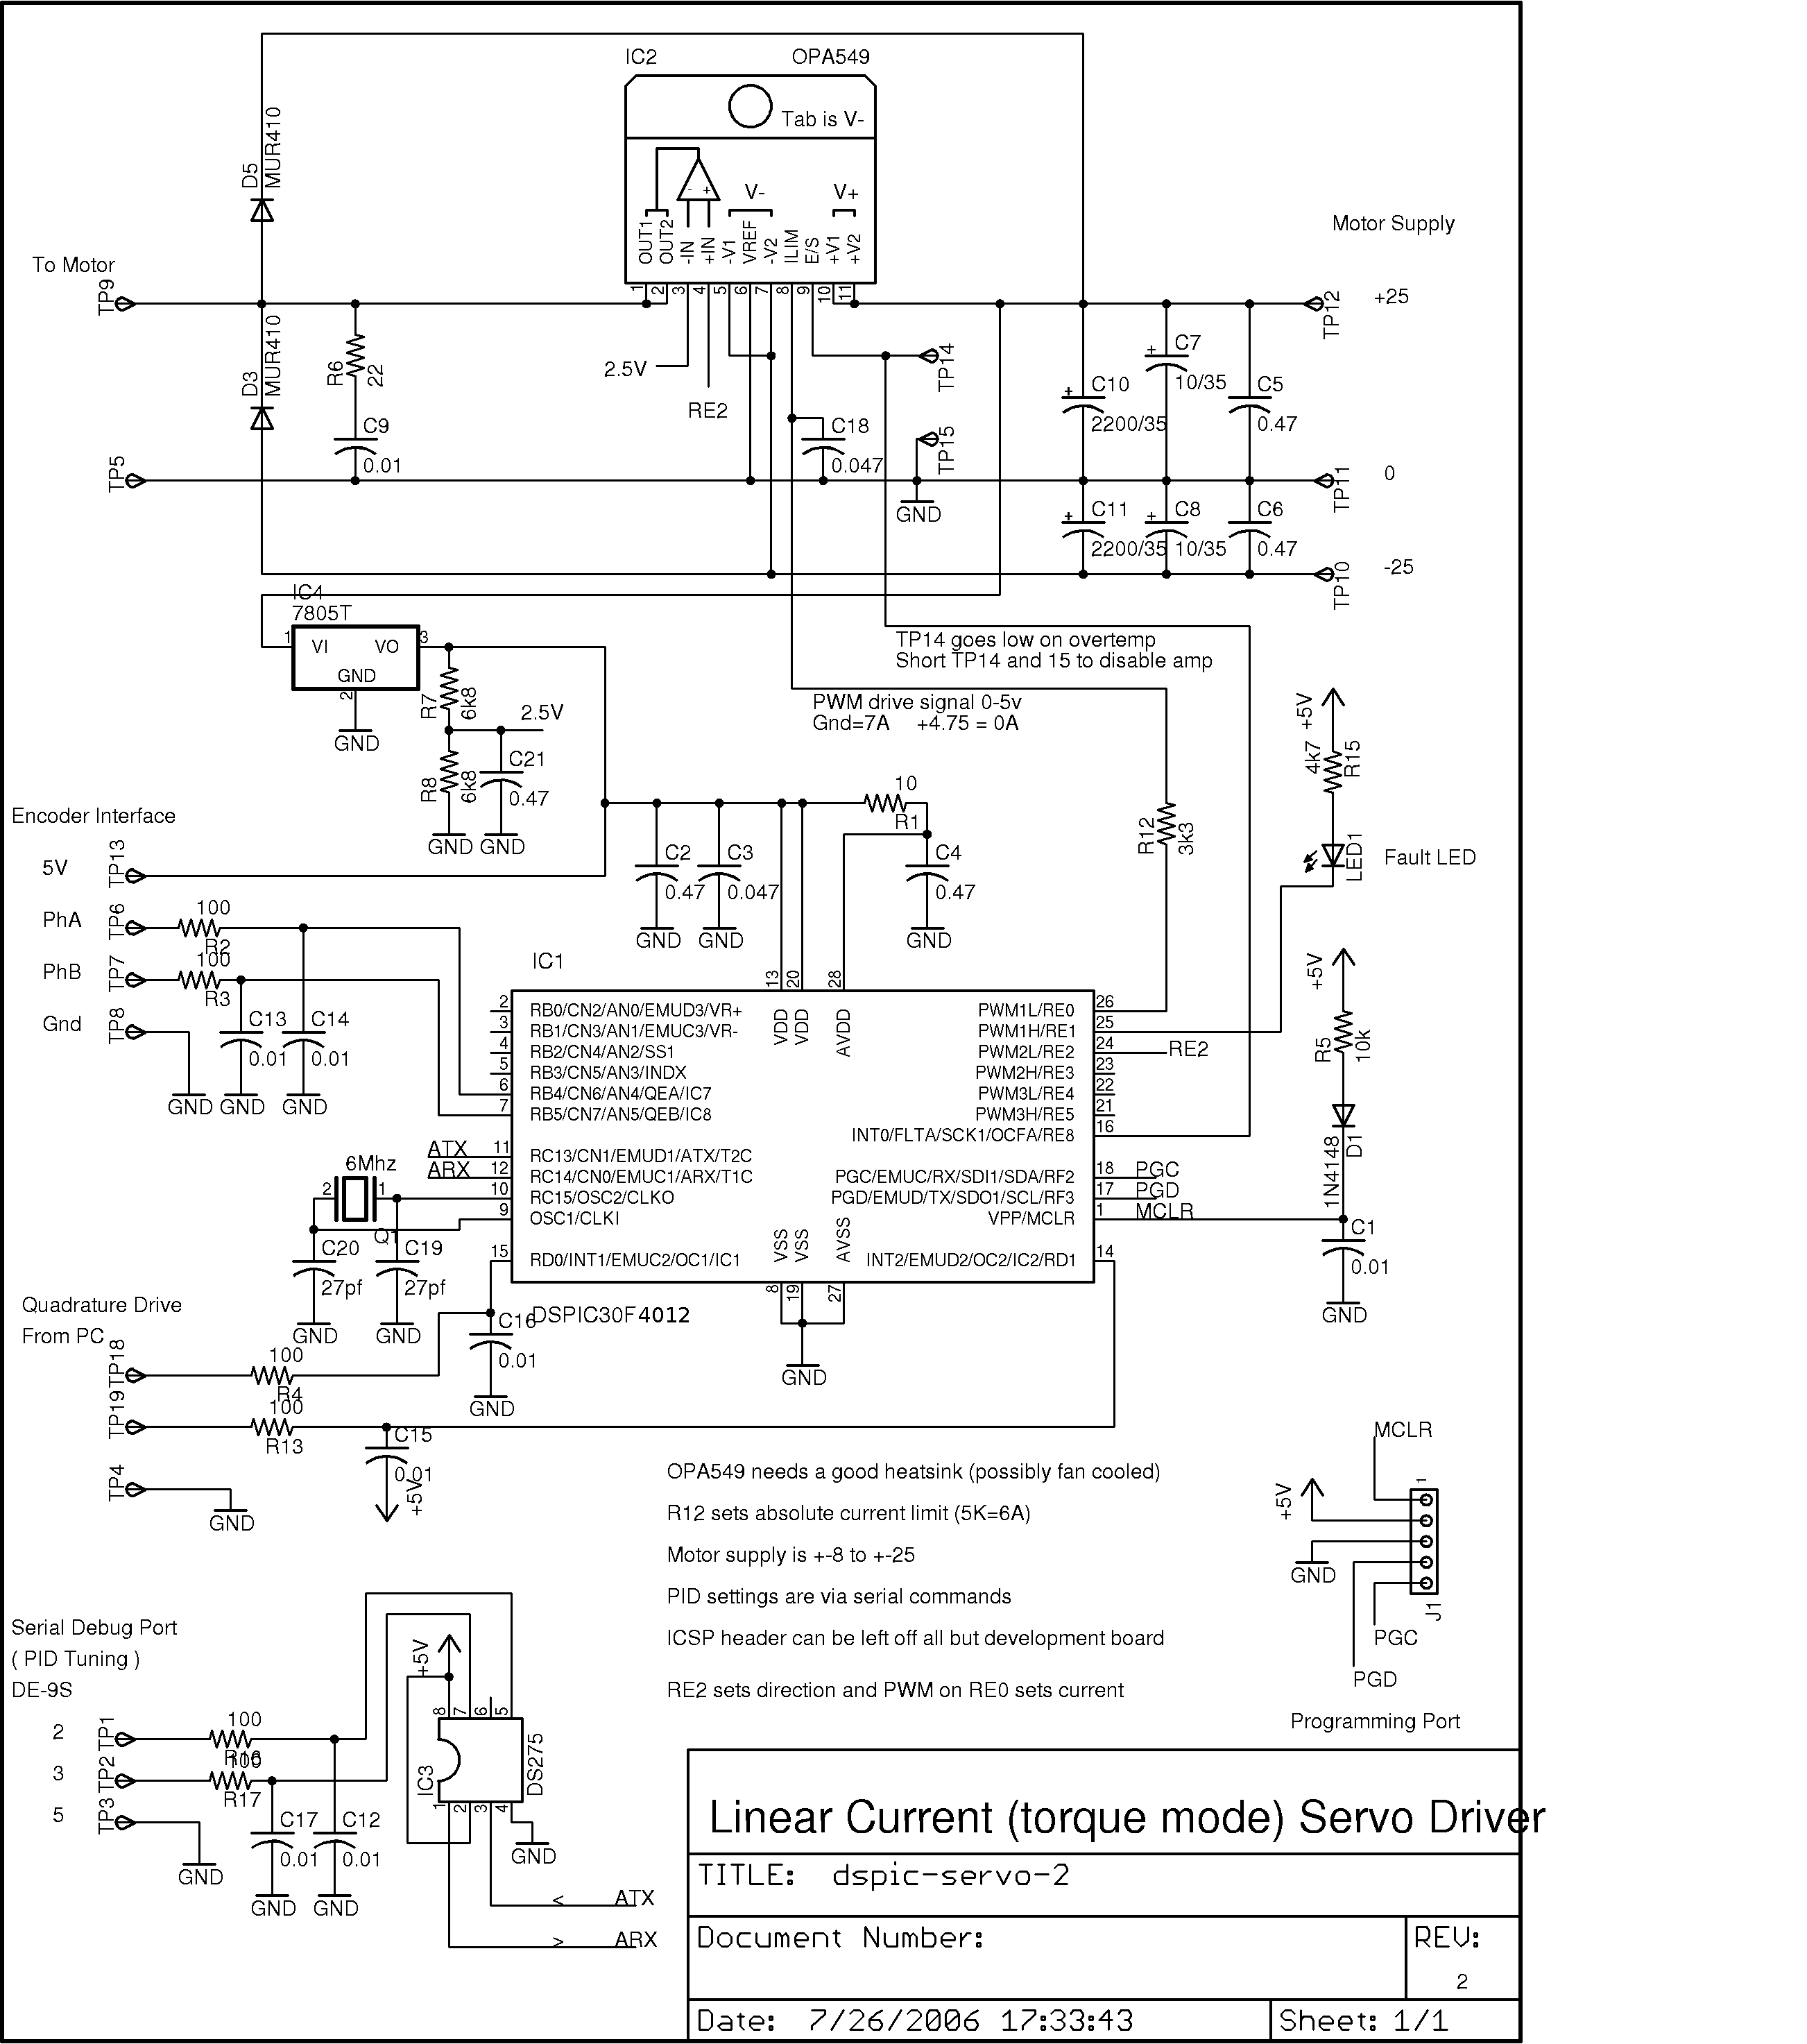 Servo Motor Circuit Page 2 Automation Circuits Diagram This Project Was Developed As An Inexpensive Way To Drive Small Dc Brushed Motors Positioning Servos For Use On A Desktop Sized Cnc Machine